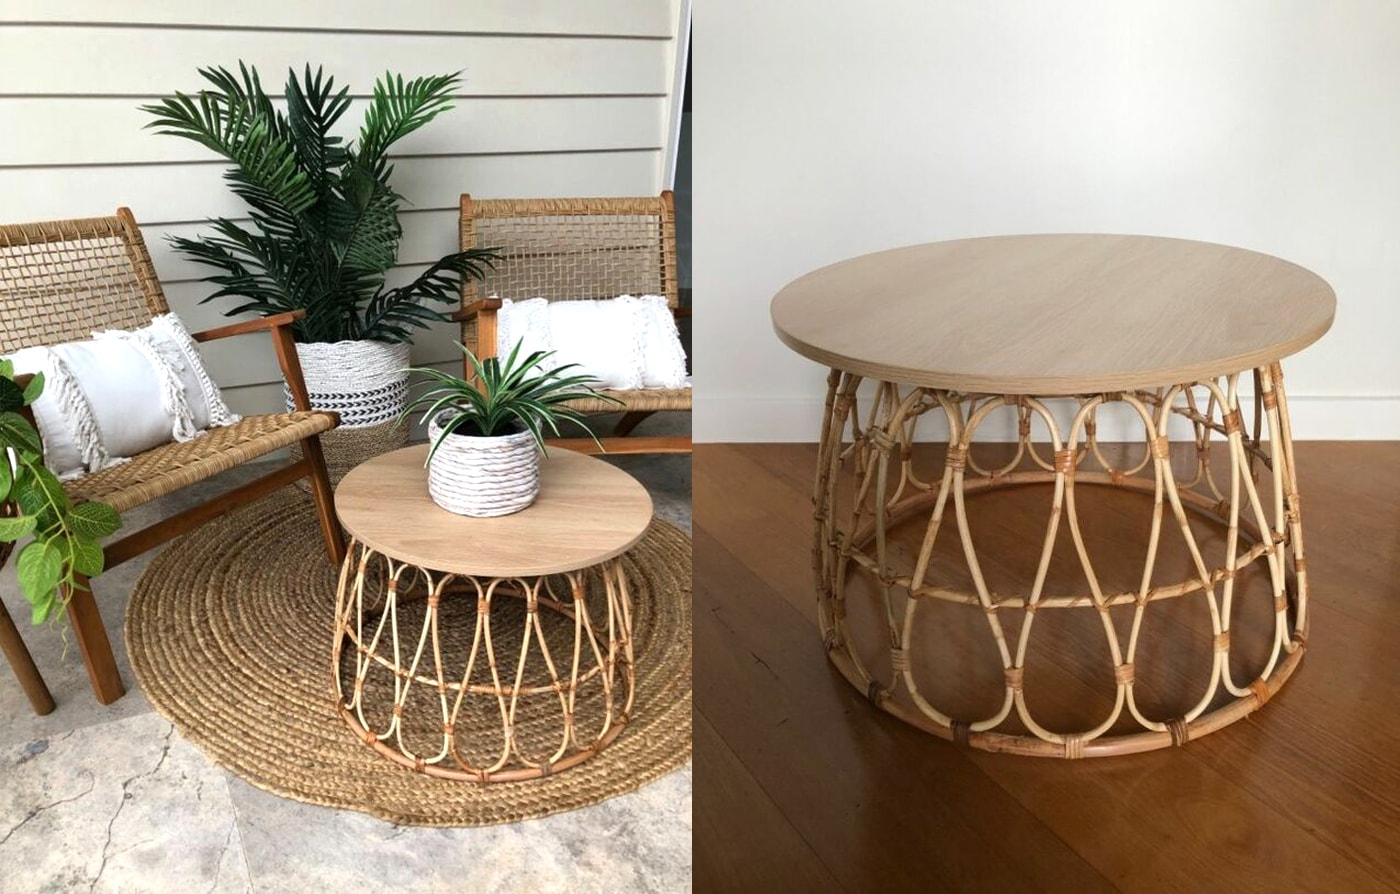 10 Diy Rattan Projects To Try The Lovely Drawer